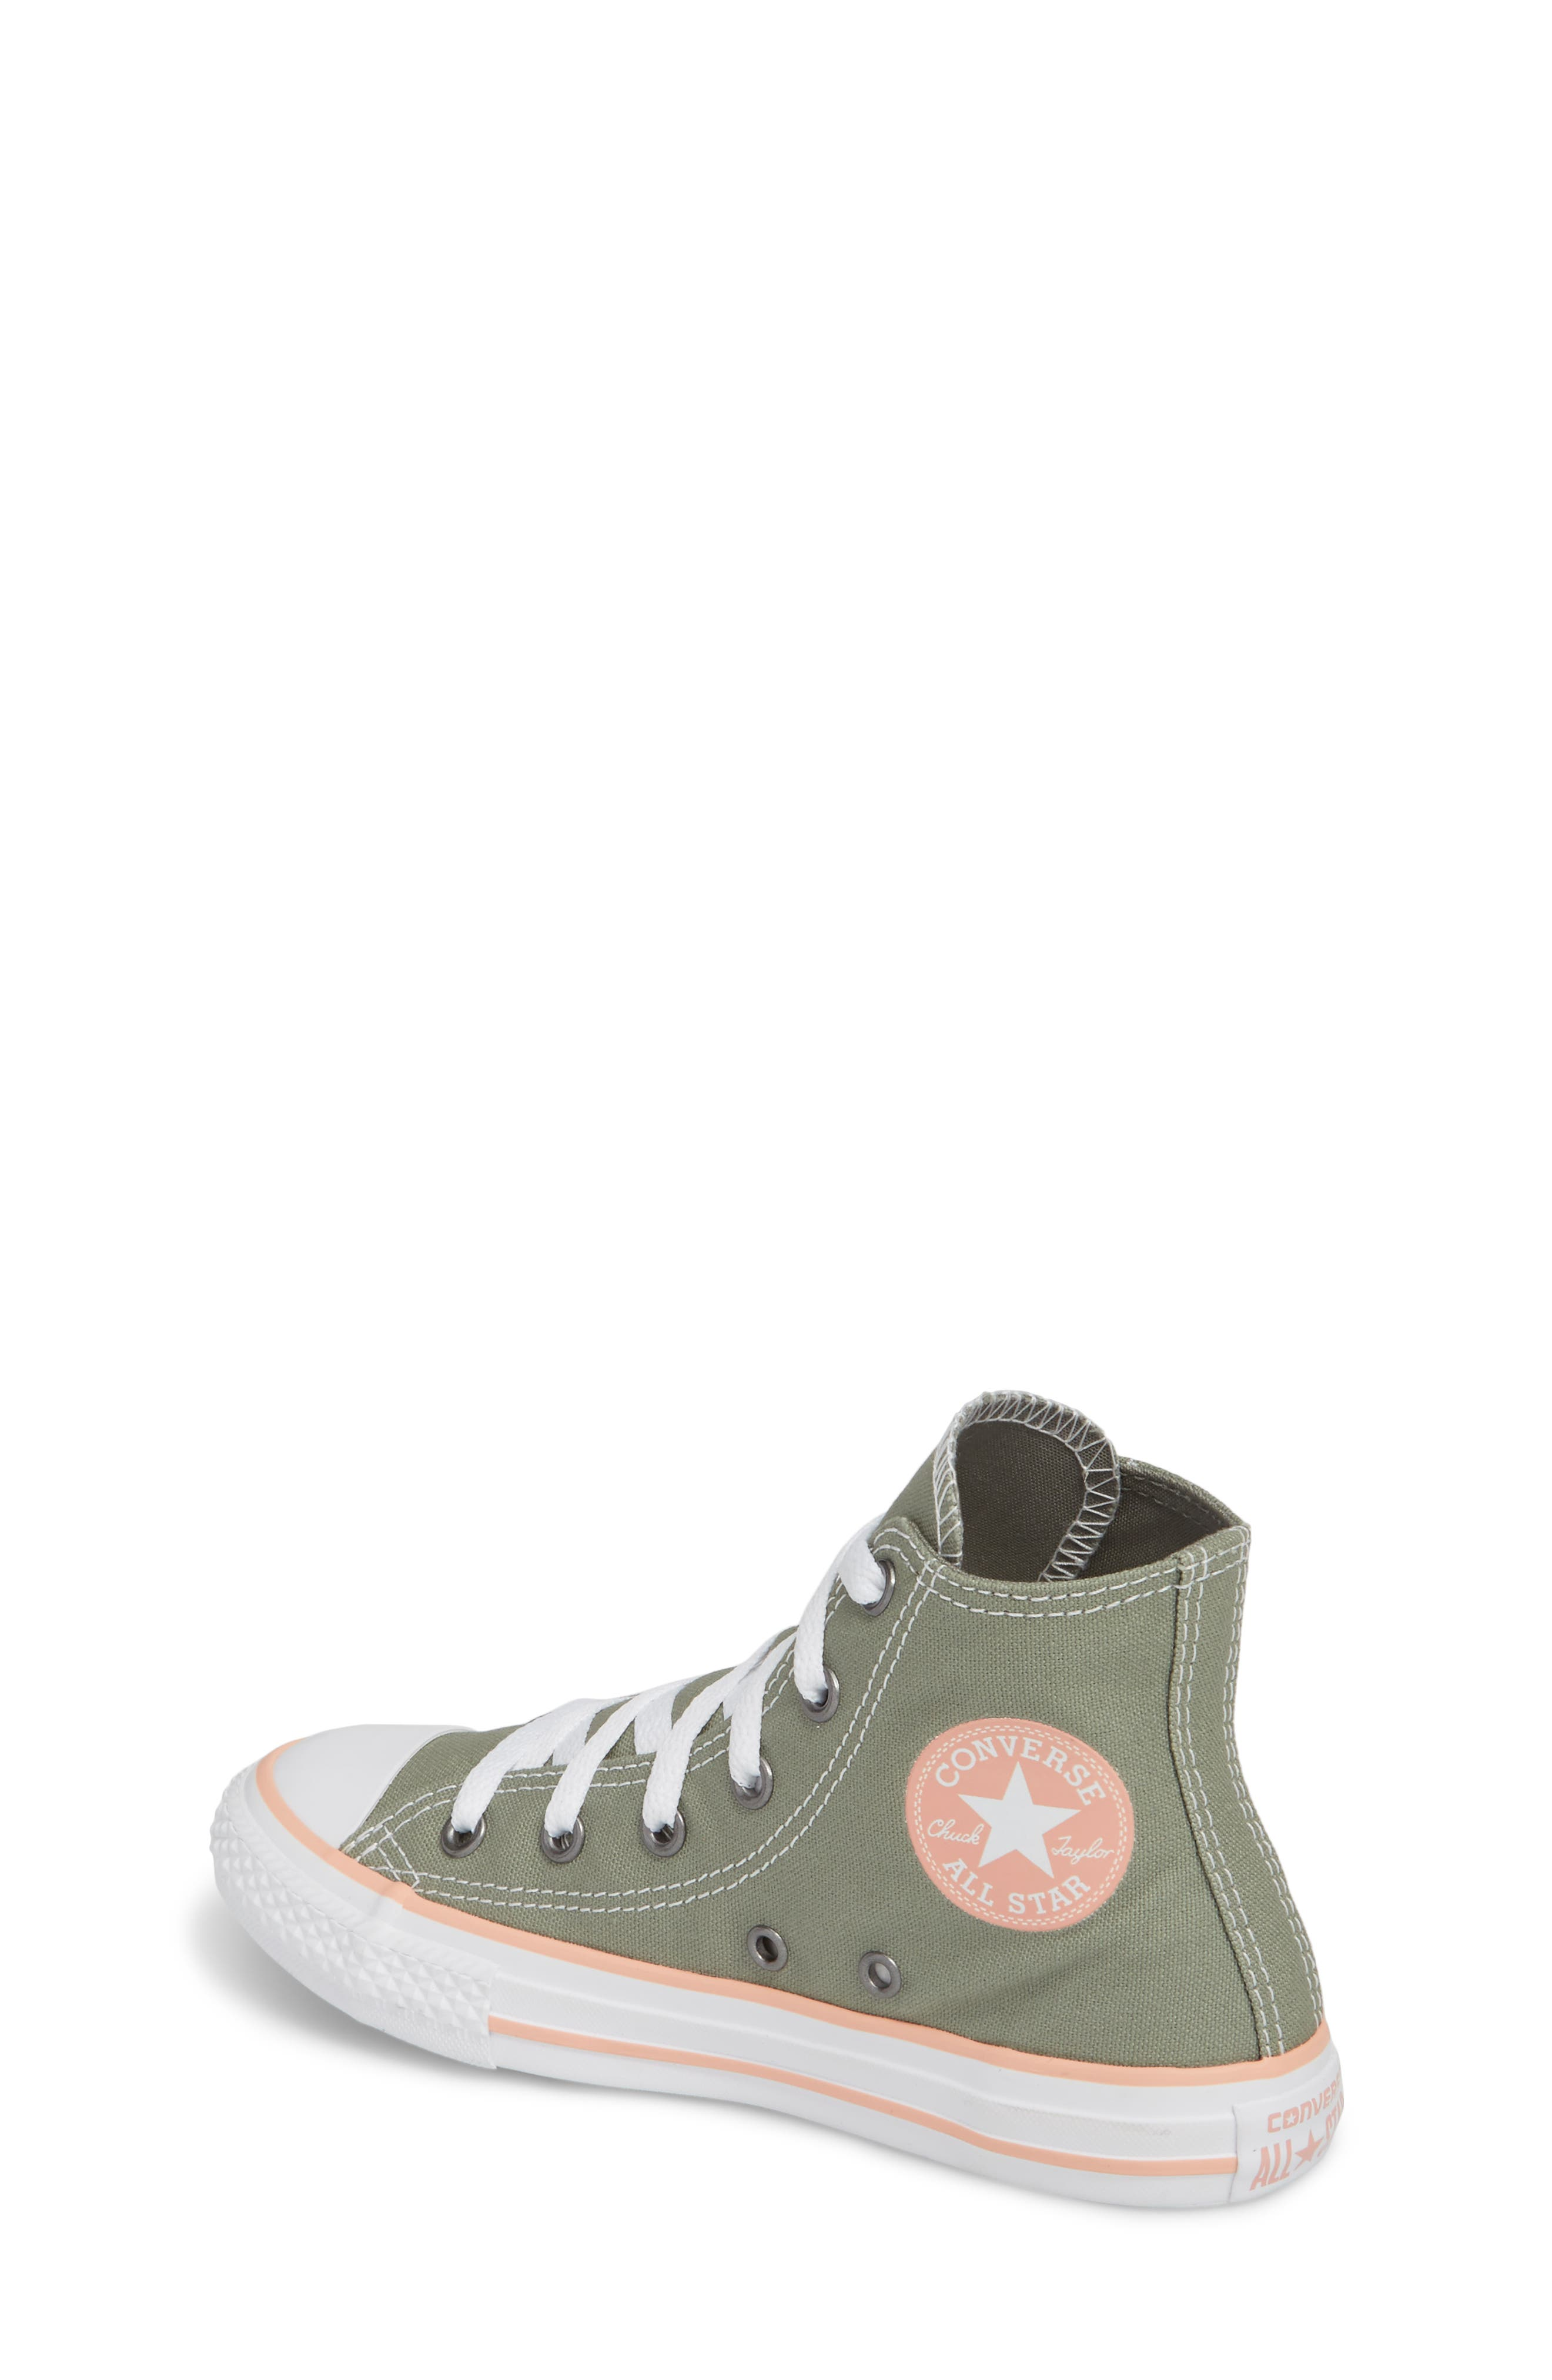 Chuck Taylor<sup>®</sup> All Star<sup>®</sup> High Top Sneaker,                             Alternate thumbnail 2, color,                             020